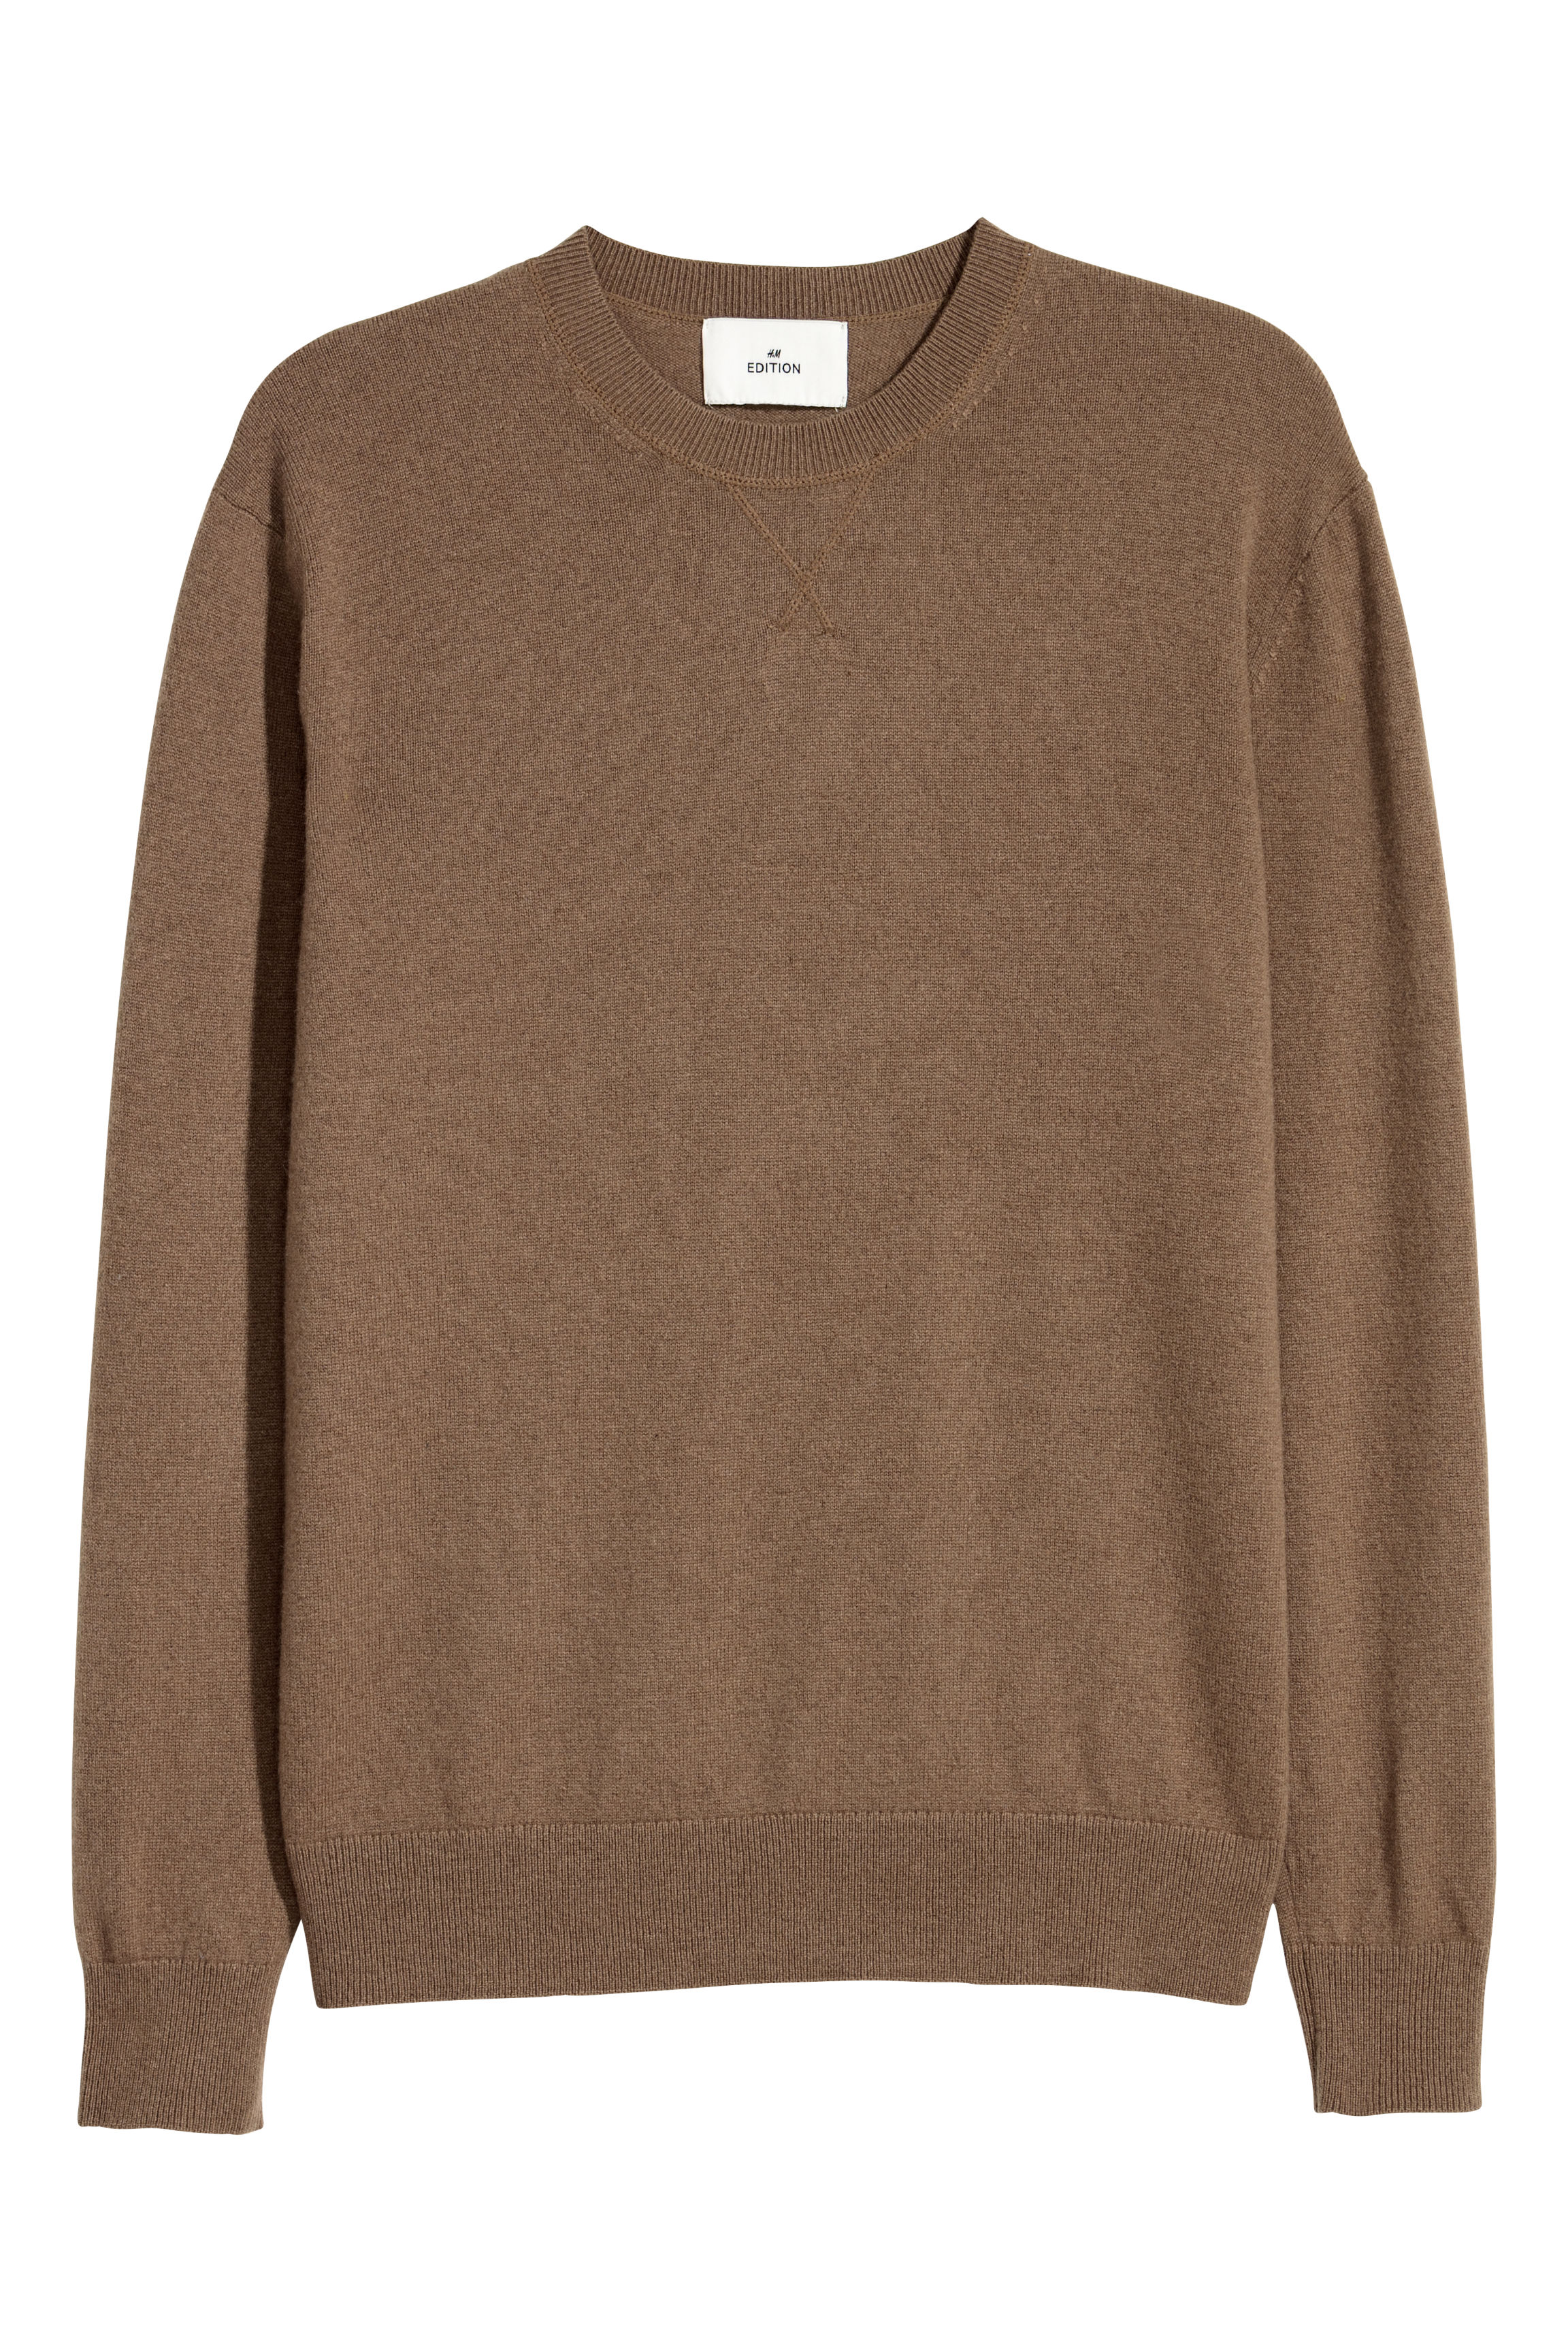 H&M Edition Brown Cashmere jumper